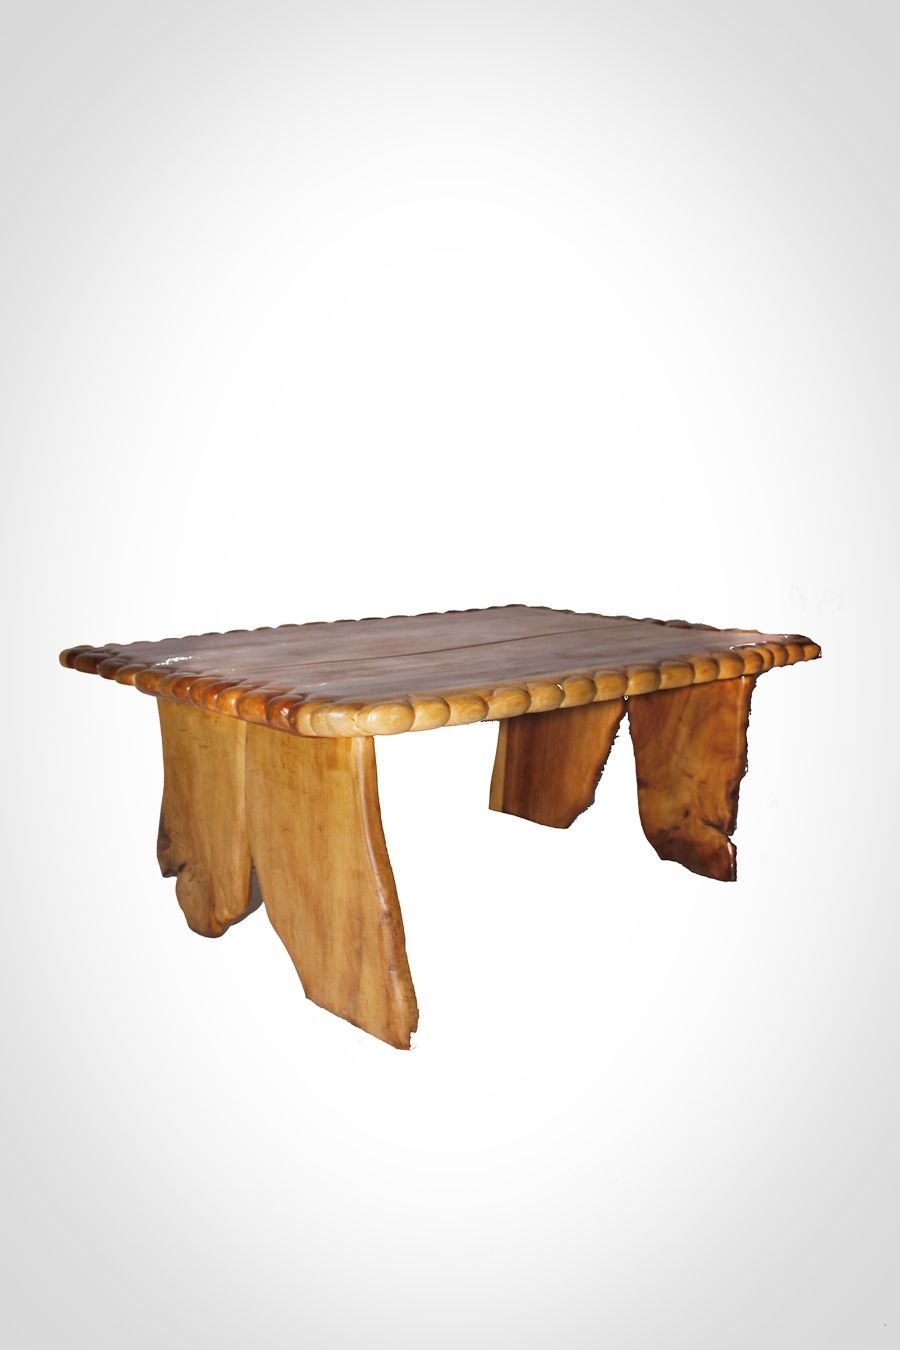 Www Arabisque Org A Stunning Coffee Table For Your Home The Merlot Stained